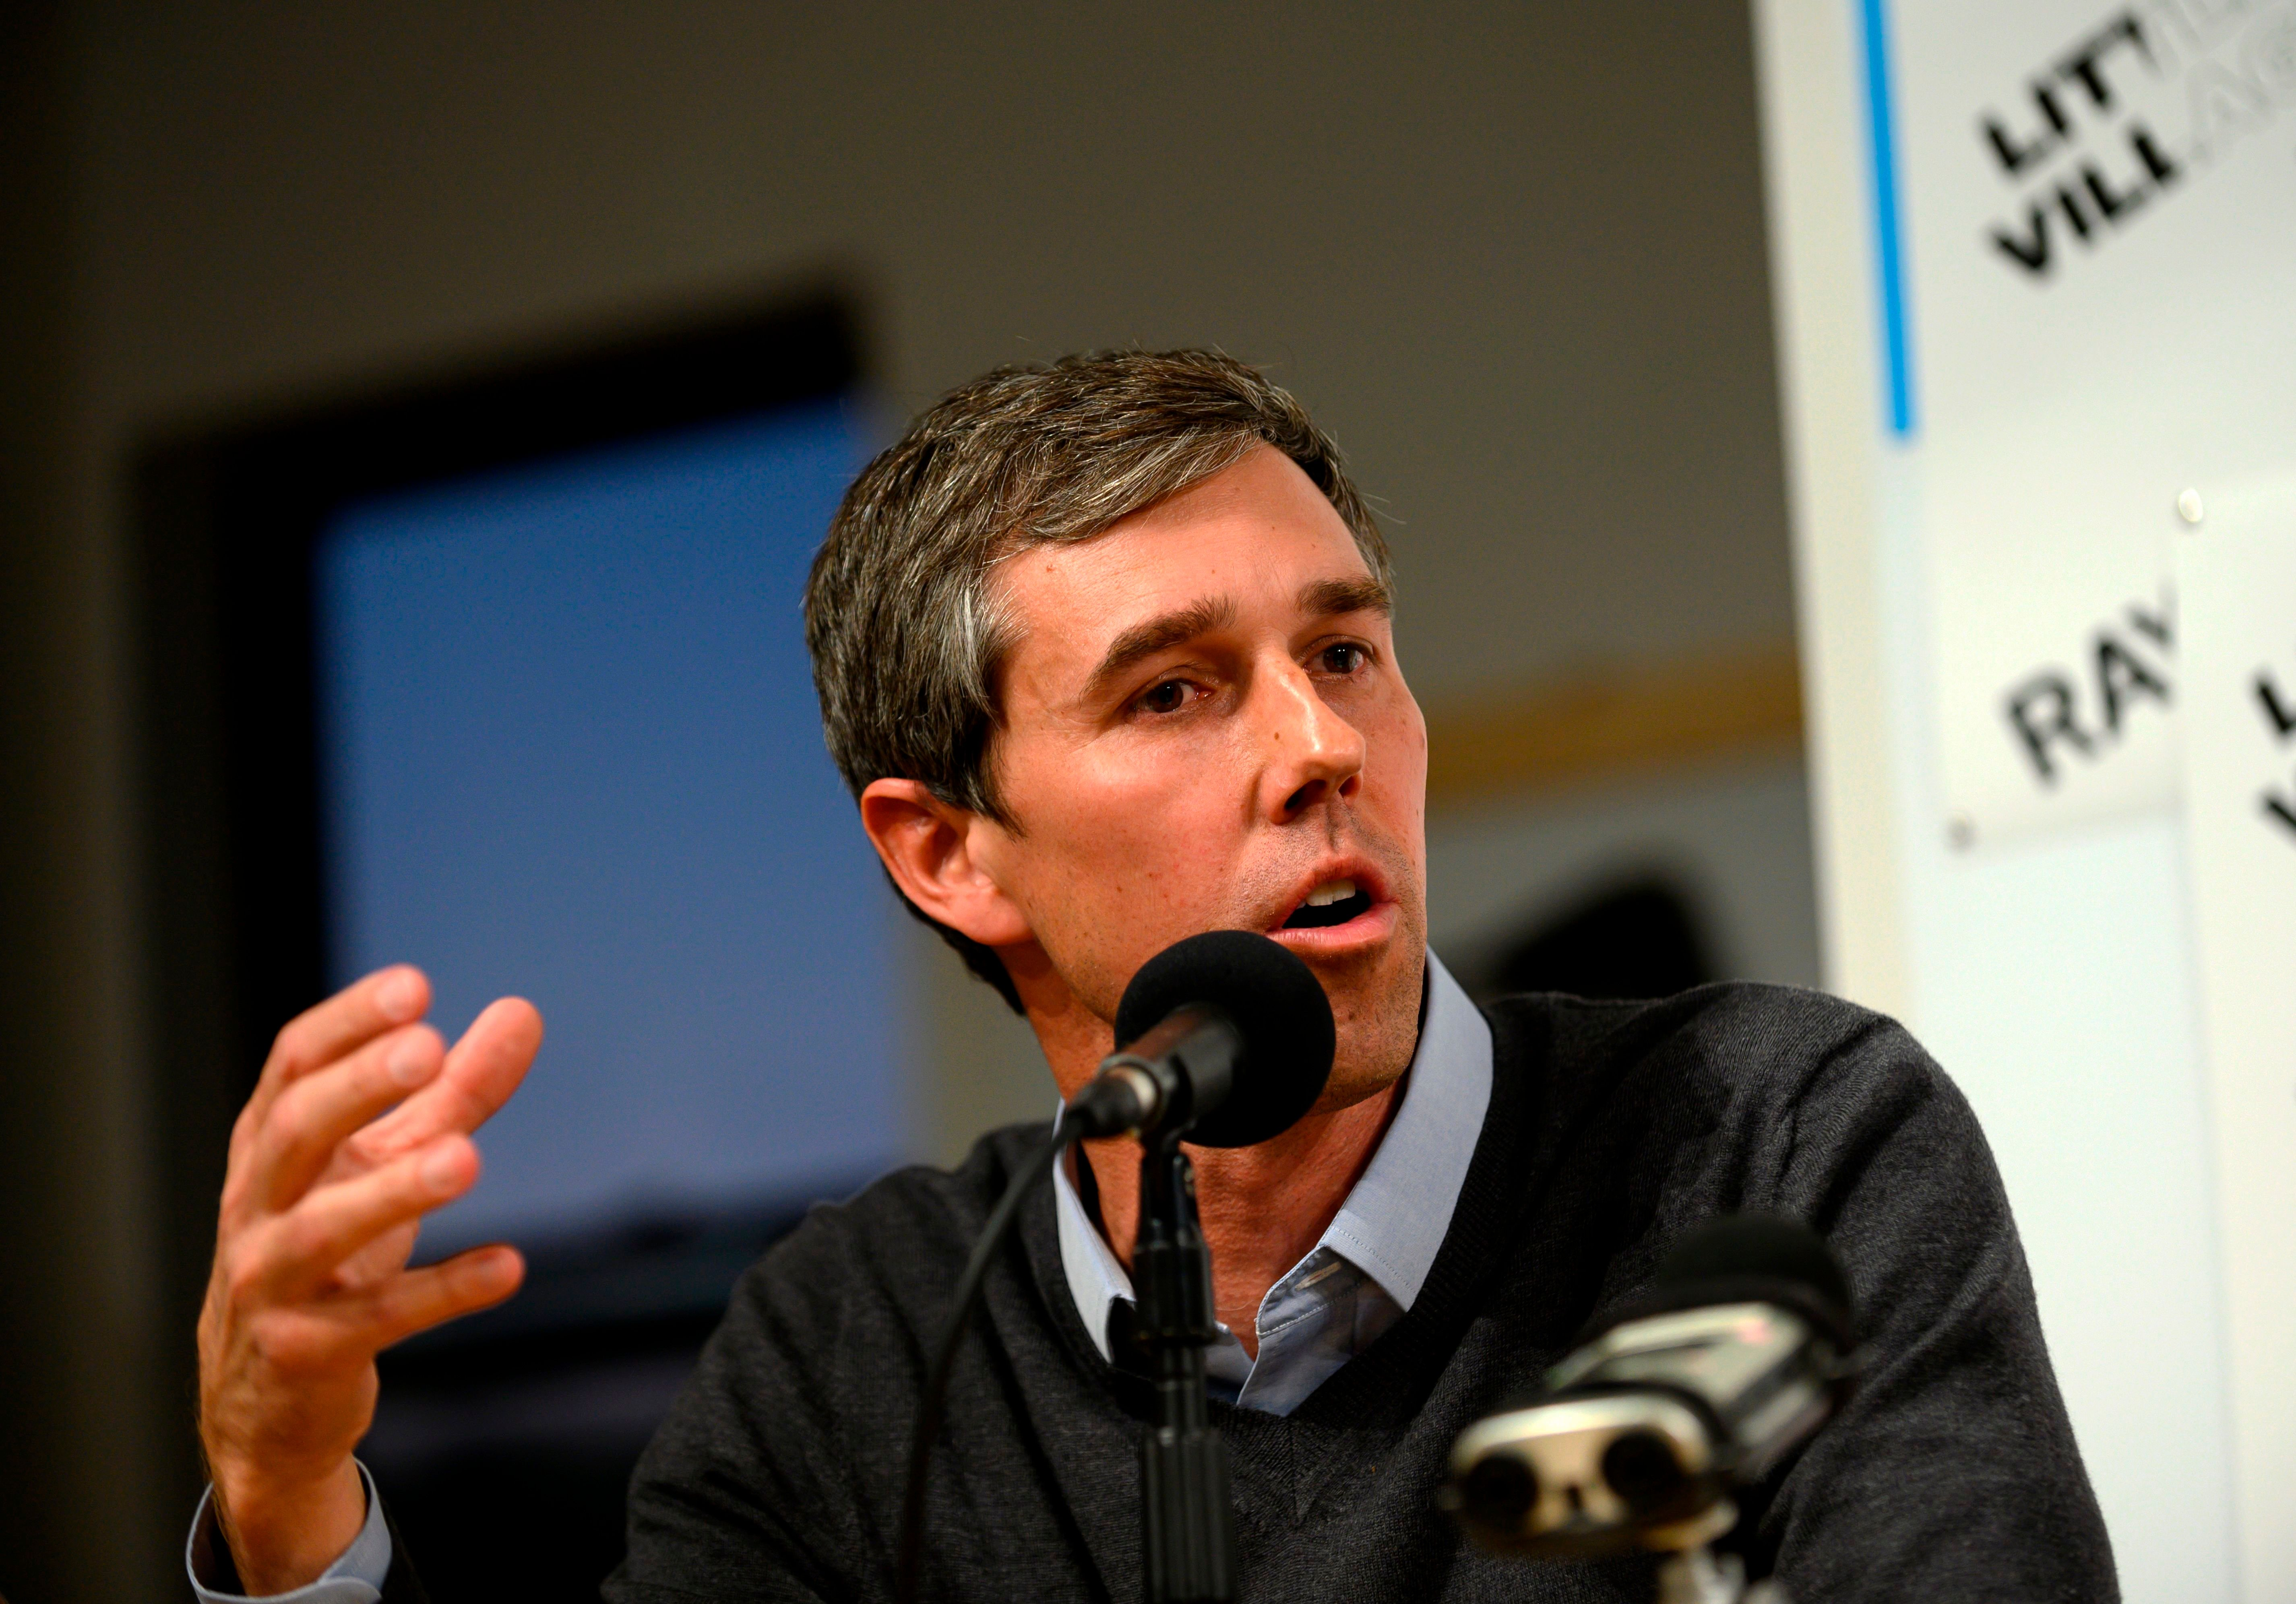 Former Texas Congressman and Democratic party presidential candidate Beto O'Rourke speaks during a podcast taping at Raygun in Cedar Rapids, Iowa on March 15, 2019. - O'Rourke joined the hosts of the Political Party Live podcast while campaigning in Iowa. O'Rourke, a skateboarding former punk rocker feted as one of the Democratic Party's rising stars, announced Thursday he is running for president -- joining a crowded field of candidates vying to challenge US President Donald Trump in 2020. O'Rourke has been discussed as a potential frontrunner since dazzling the grassroots during an unexpectedly tight race last year to unseat Texas Republican Senator Ted Cruz. (Photo by STEPHEN MATUREN / AFP)        (Photo credit should read STEPHEN MATUREN/AFP/Getty Images)